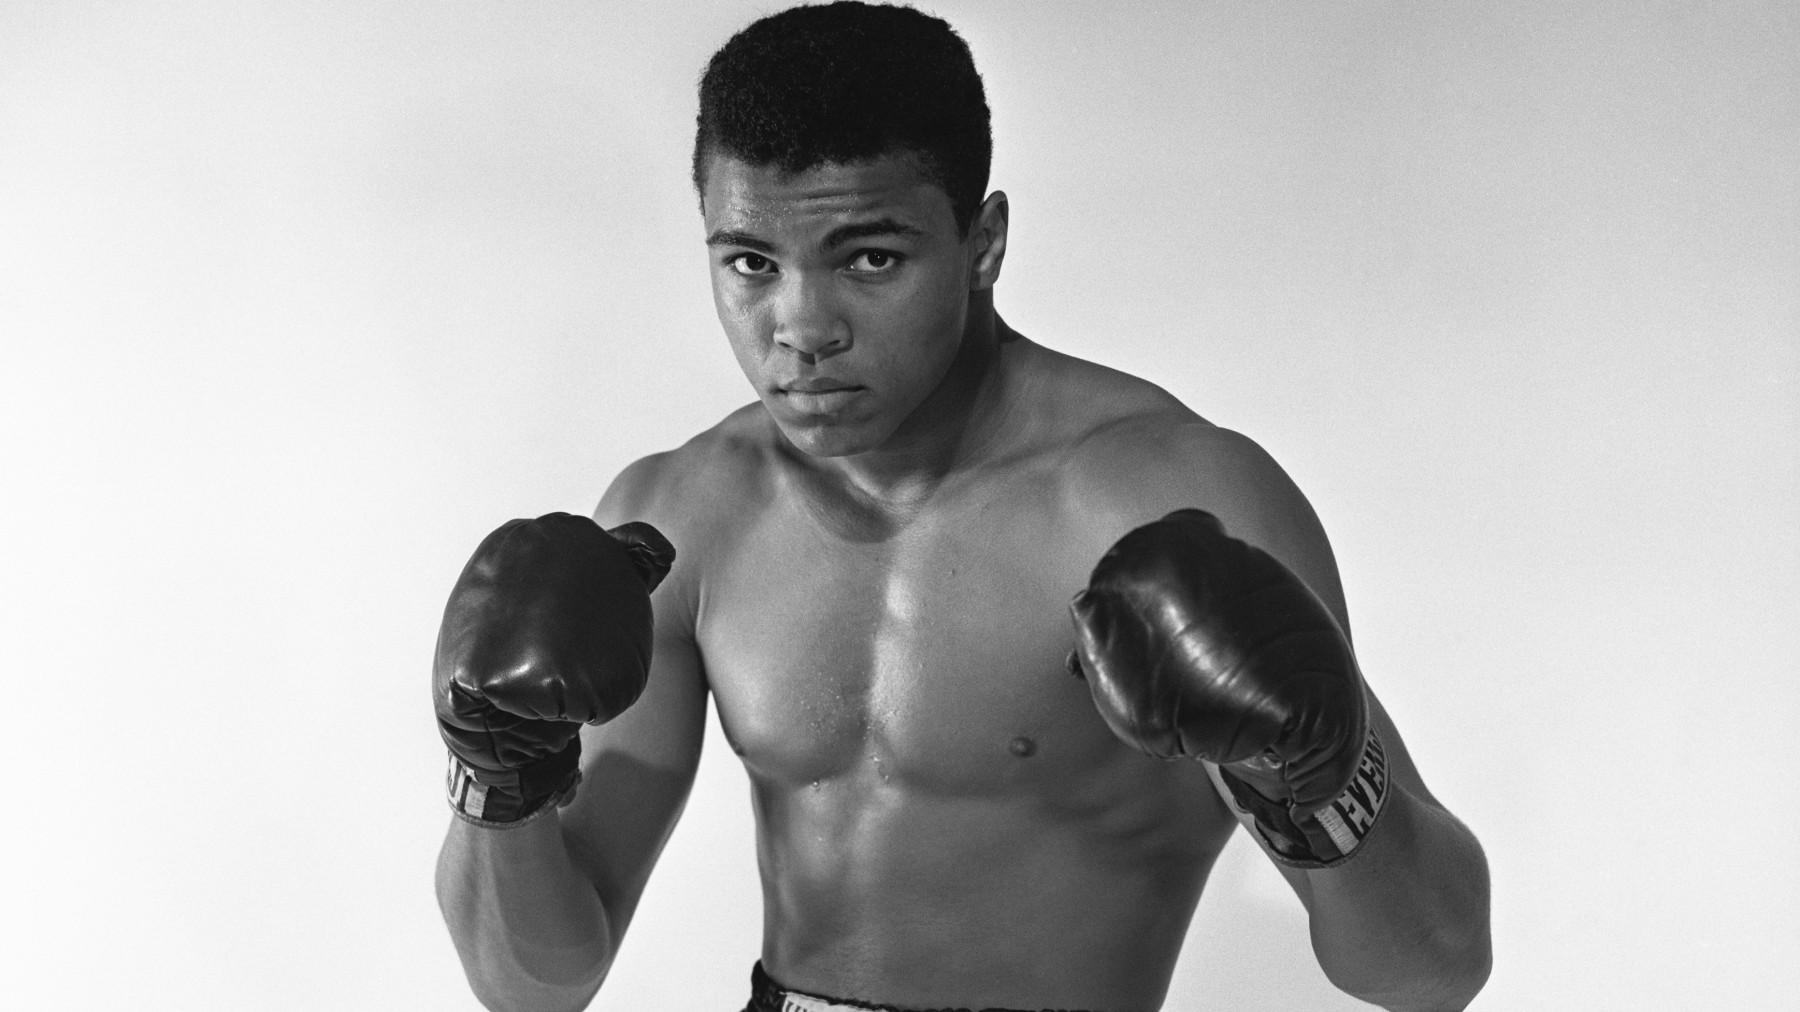 LONG ISLAND, NY - MAY 17:  Cassius Clay, 20 year old heavyweight contender from Louisville, Kentucky poses for the camera on May 17, 1962 in Long Island, New York.  (Photo by Stanley Weston/Getty Images)